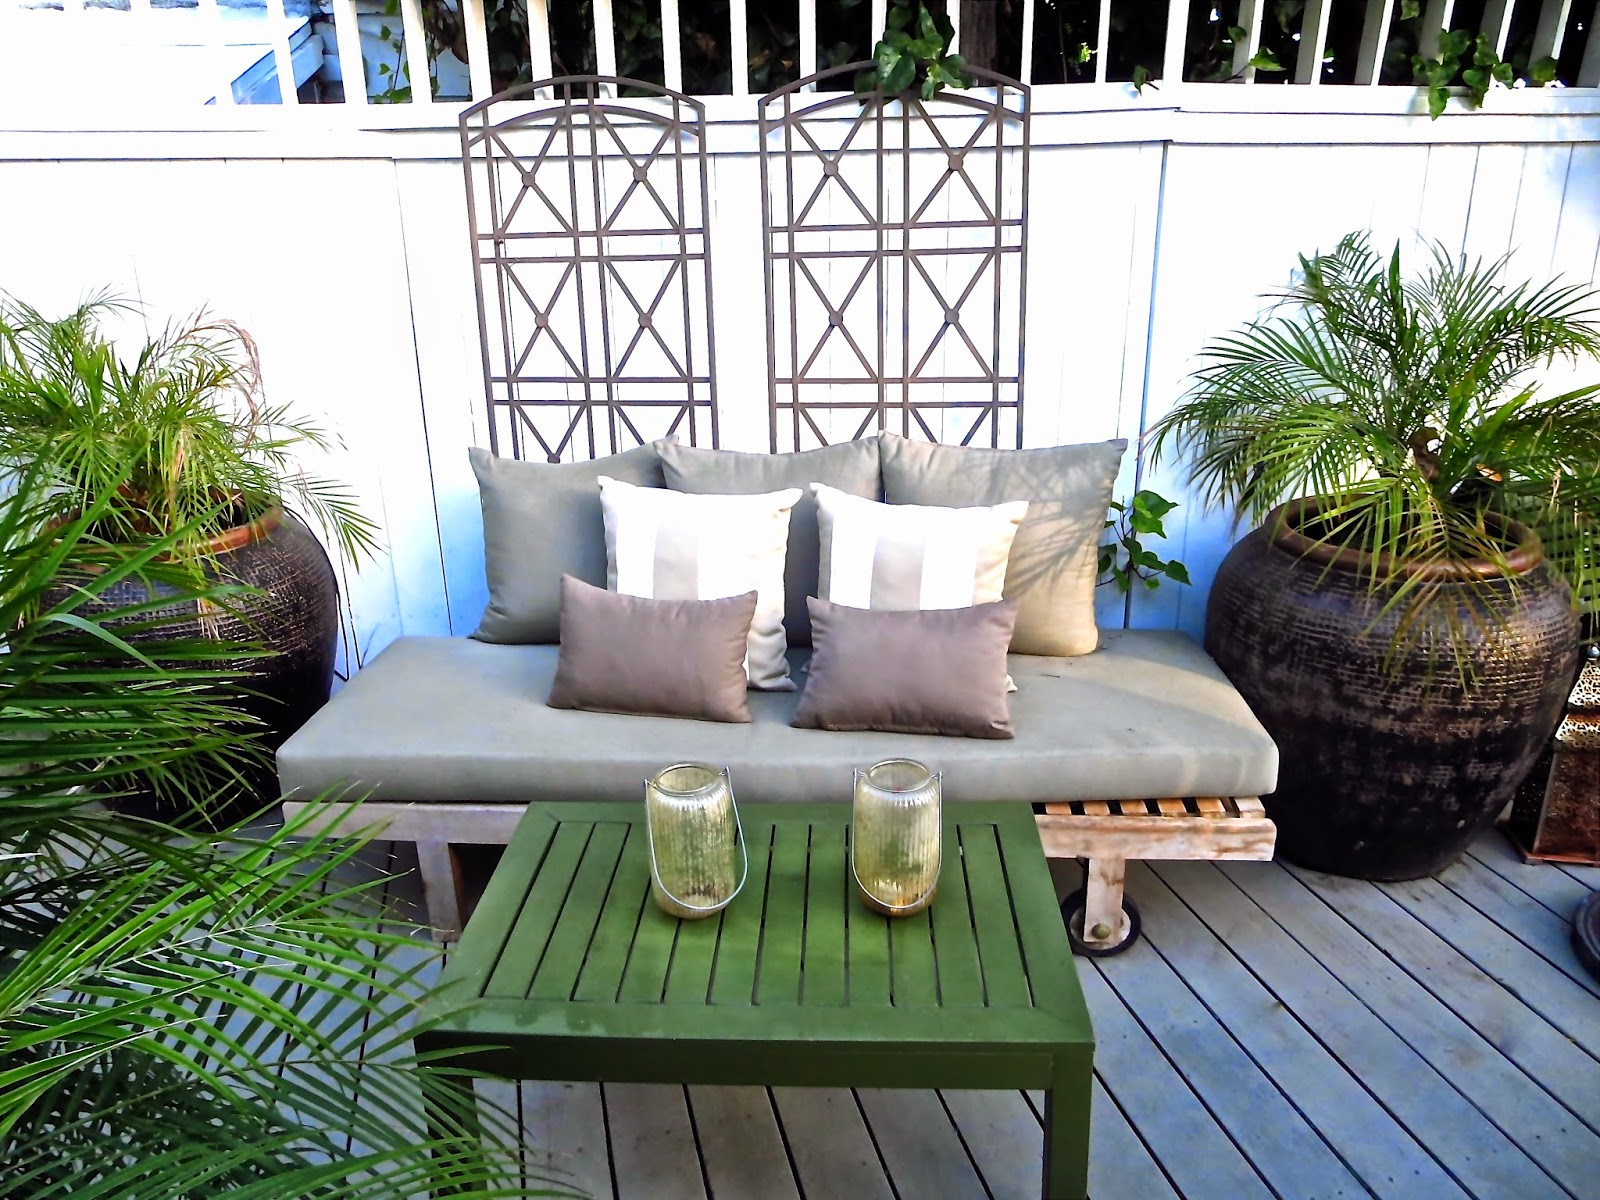 Outdoor deck with neutral color palette and weathered teak furniture